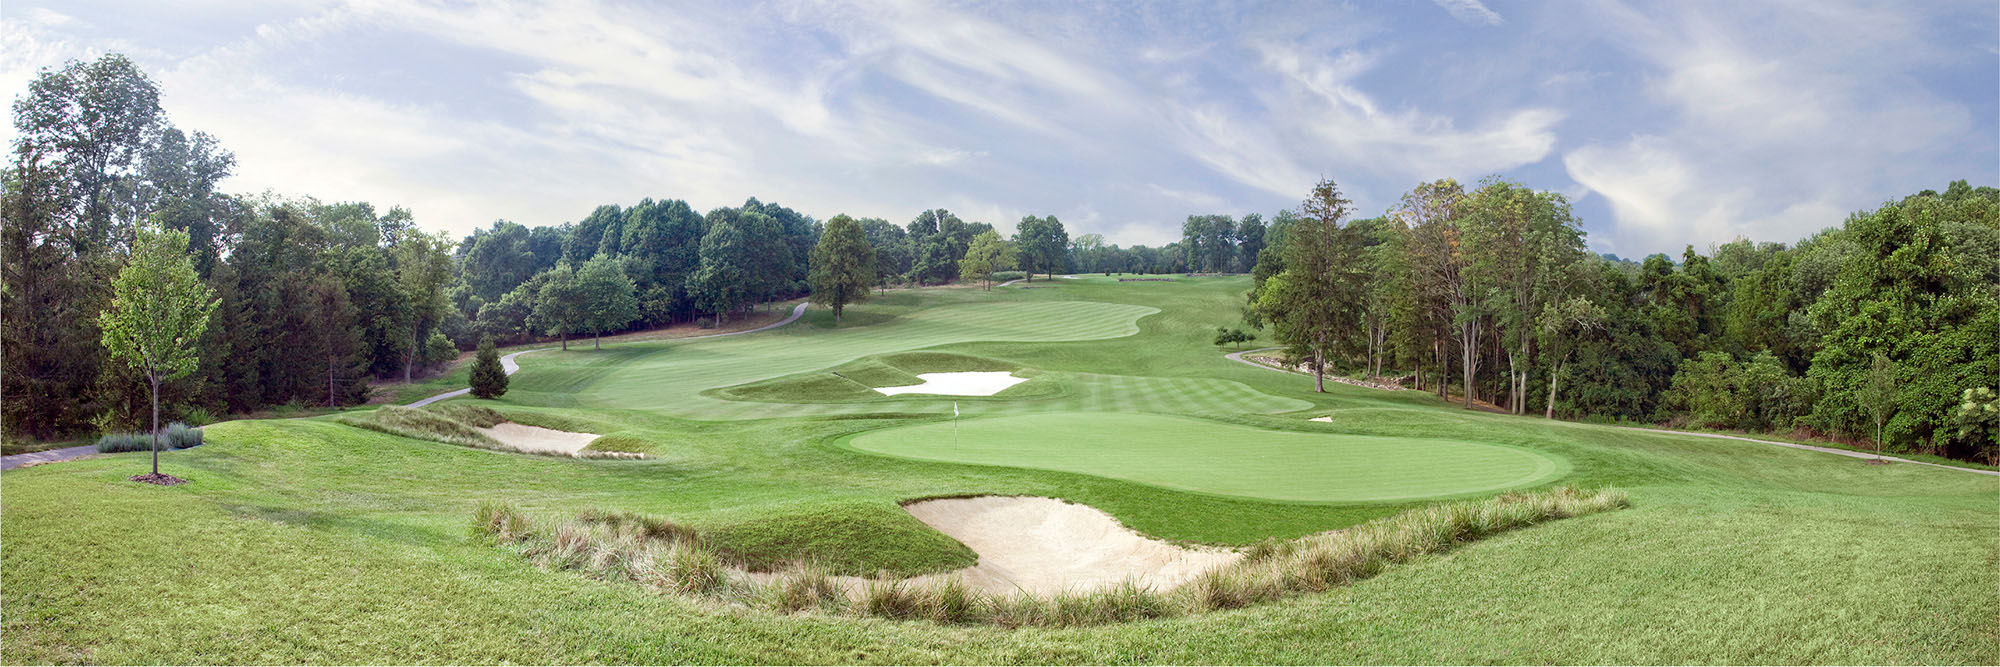 Golf Course Image - The ACE Club No. 5